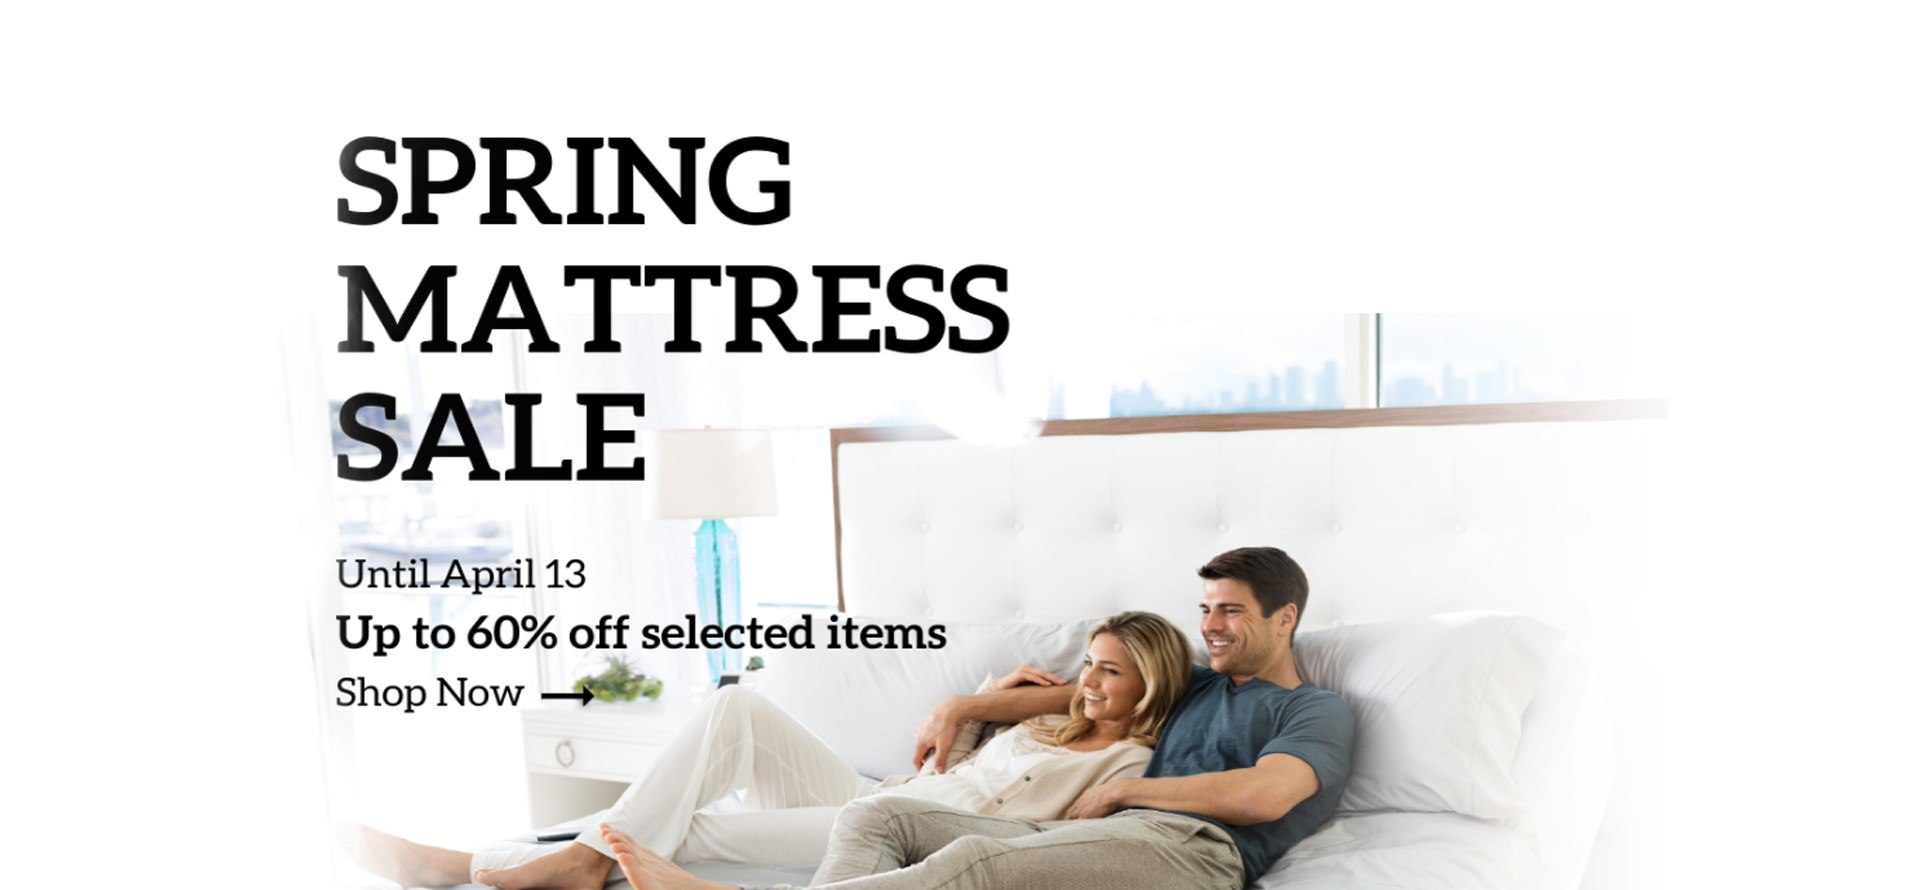 Spring Mattress Sale | Until April 13 | Up to 60% off selected items